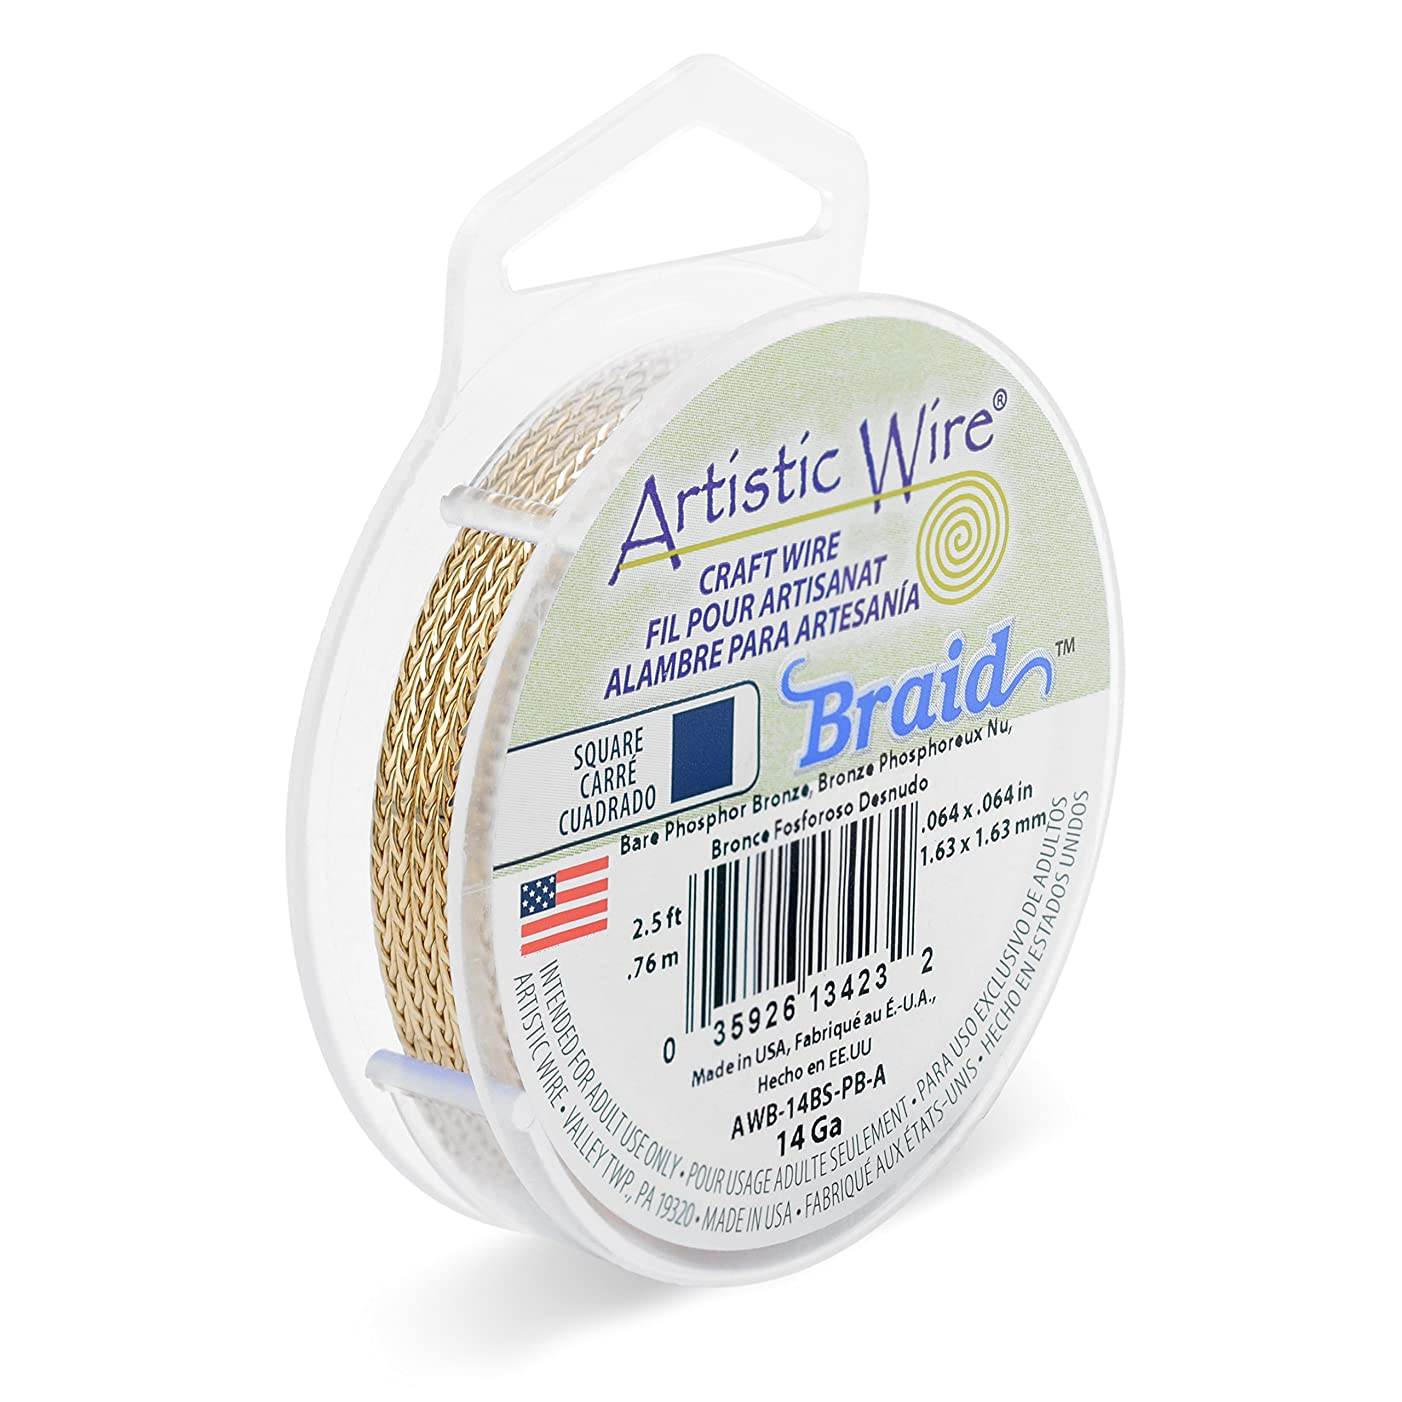 Artistic Wire 14 Gauge, Bare Phosphor Bronze, 2.5 ft Square Braid,